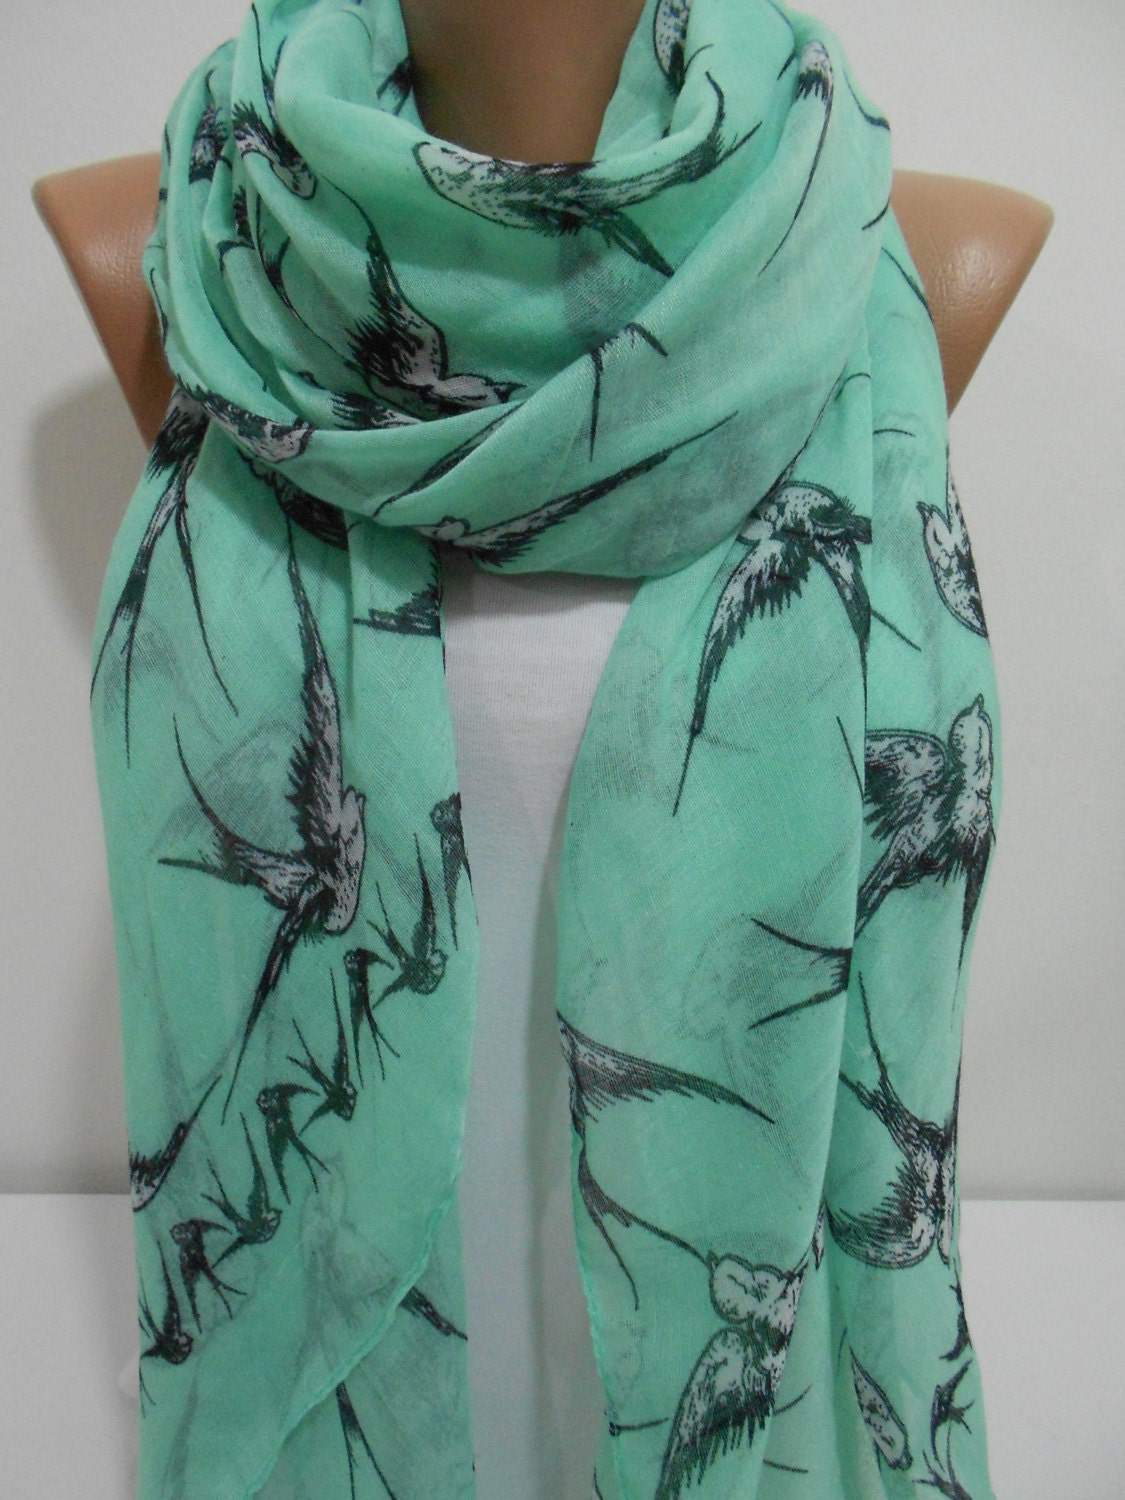 Bird Print Scarf Shawl, Mint Green Cowl Scarf, Swallow Long Scarf, Oversize Scarf, Lightweight Cotton Scarf, Gifth For Her, MiracleShine - MiracleShine